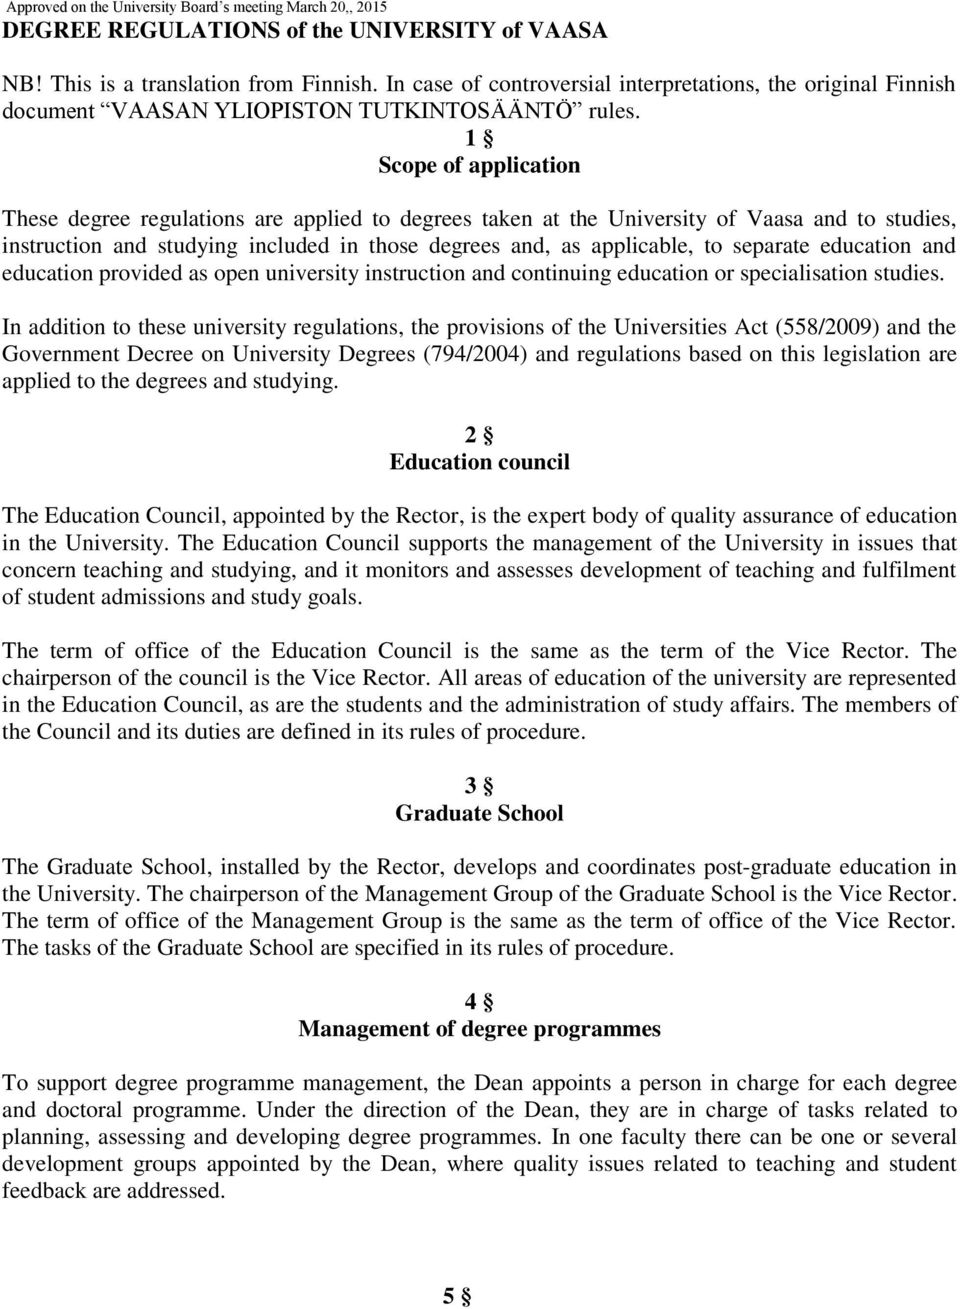 1 Scope of application These degree regulations are applied to degrees taken at the University of Vaasa and to studies, instruction and studying included in those degrees and, as applicable, to